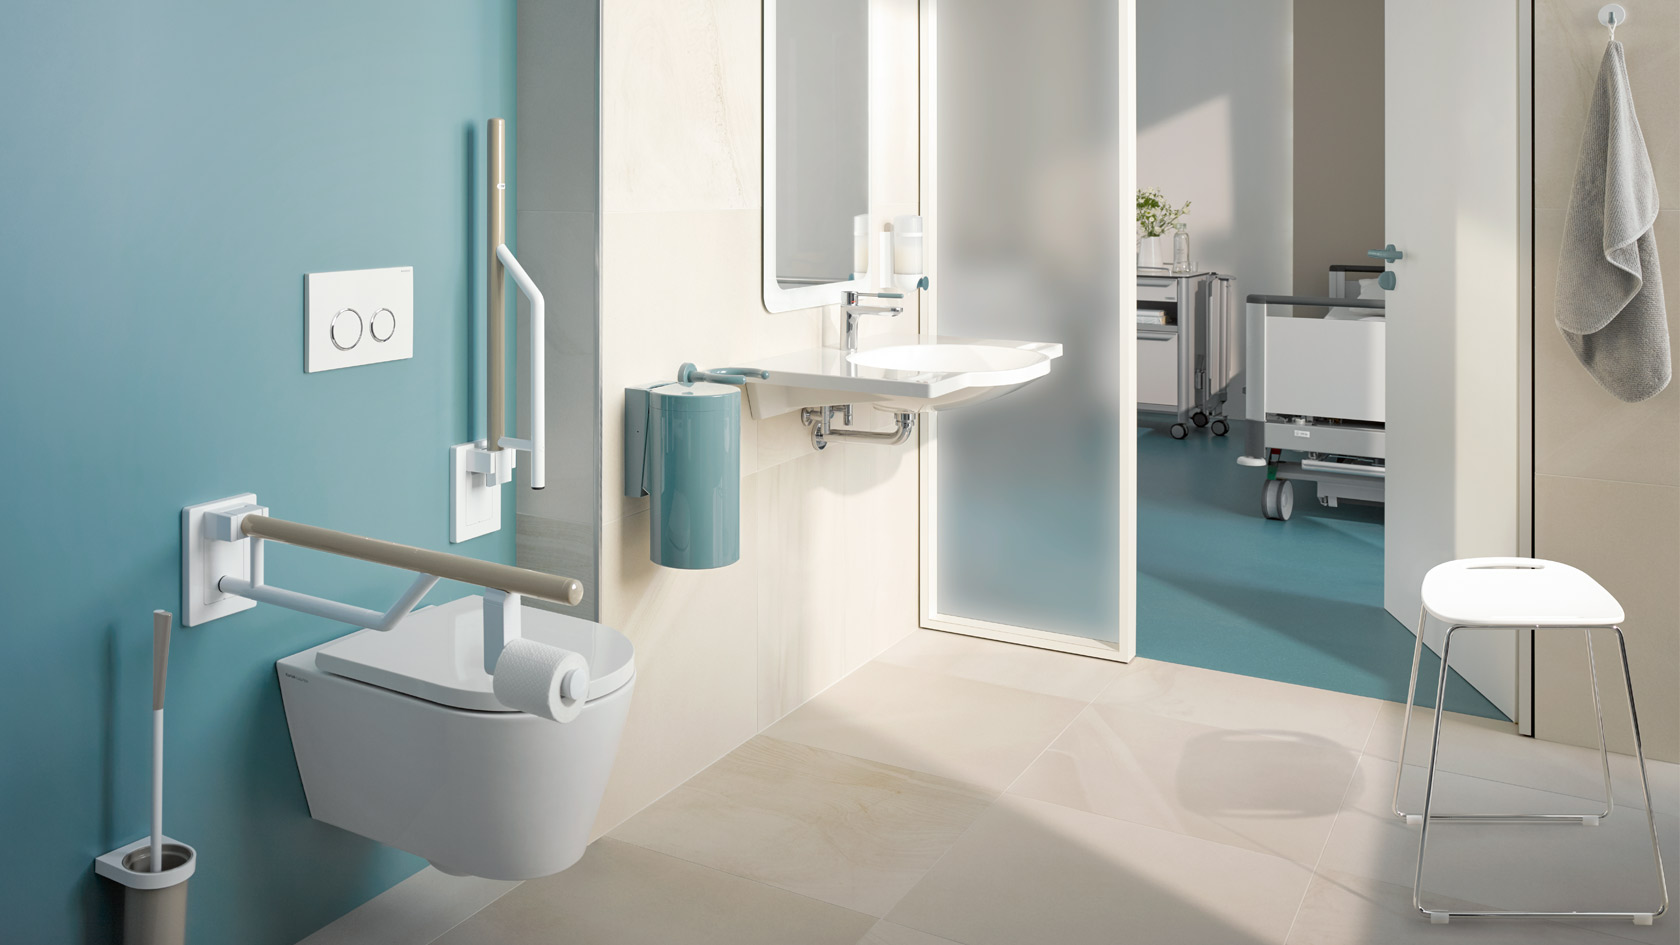 Hewi system solutions for bathrooms and sanitary rooms for Badezimmer design accessoires